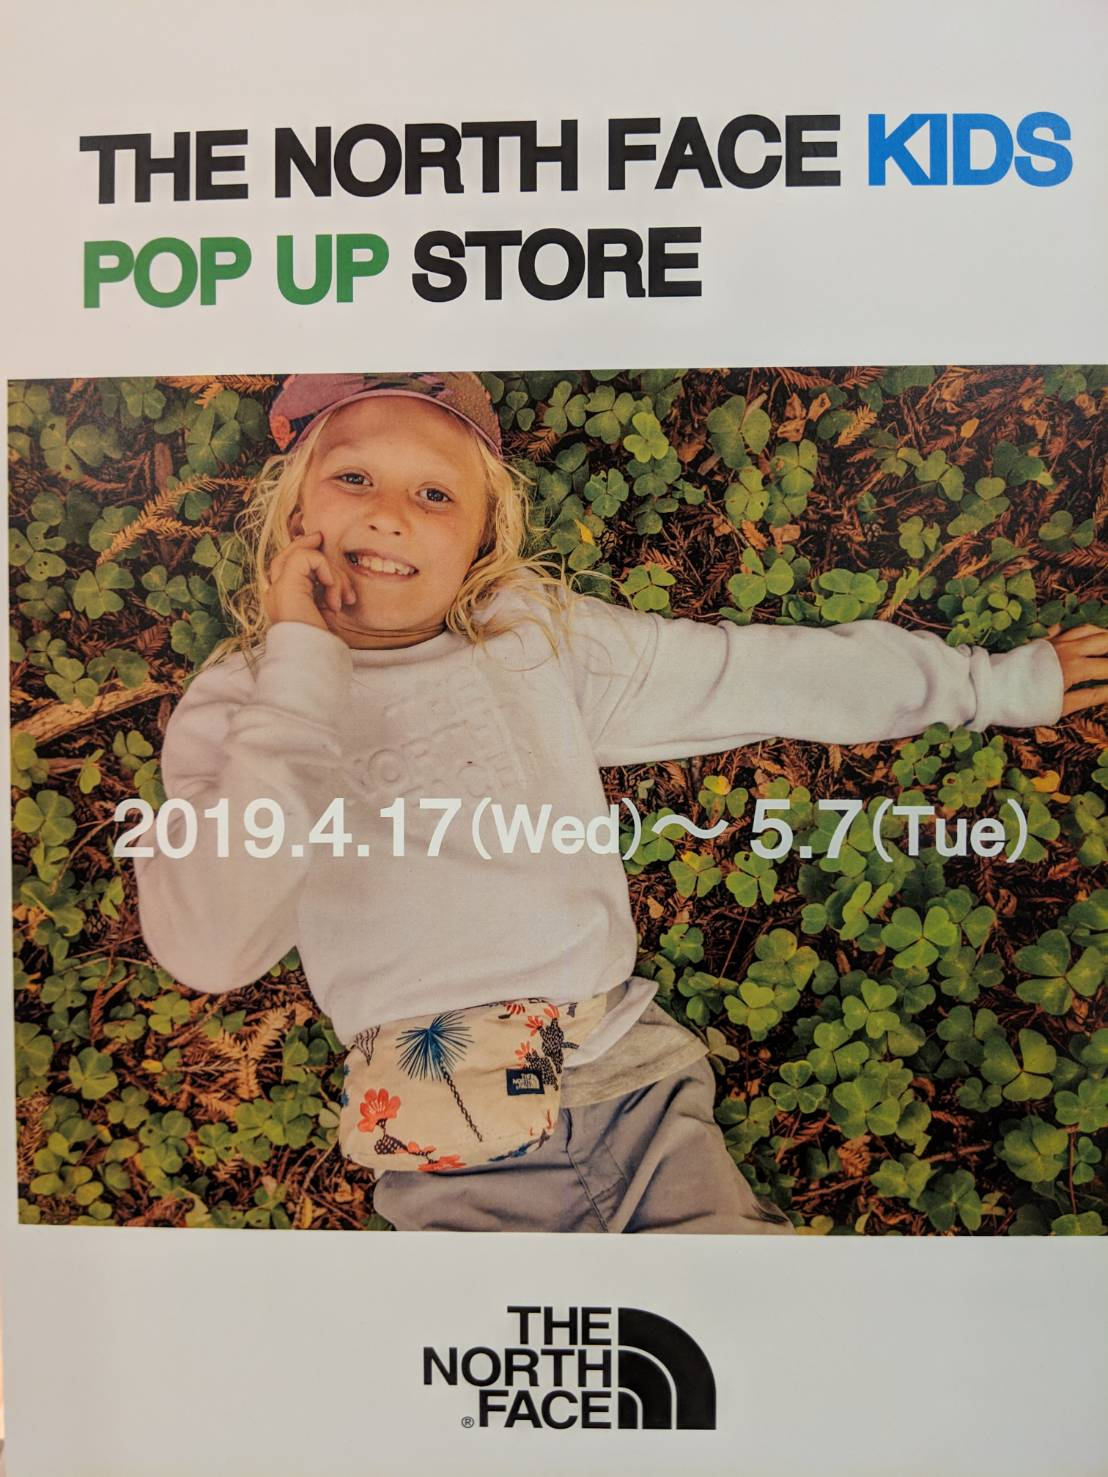 KID'S POP UP STORE